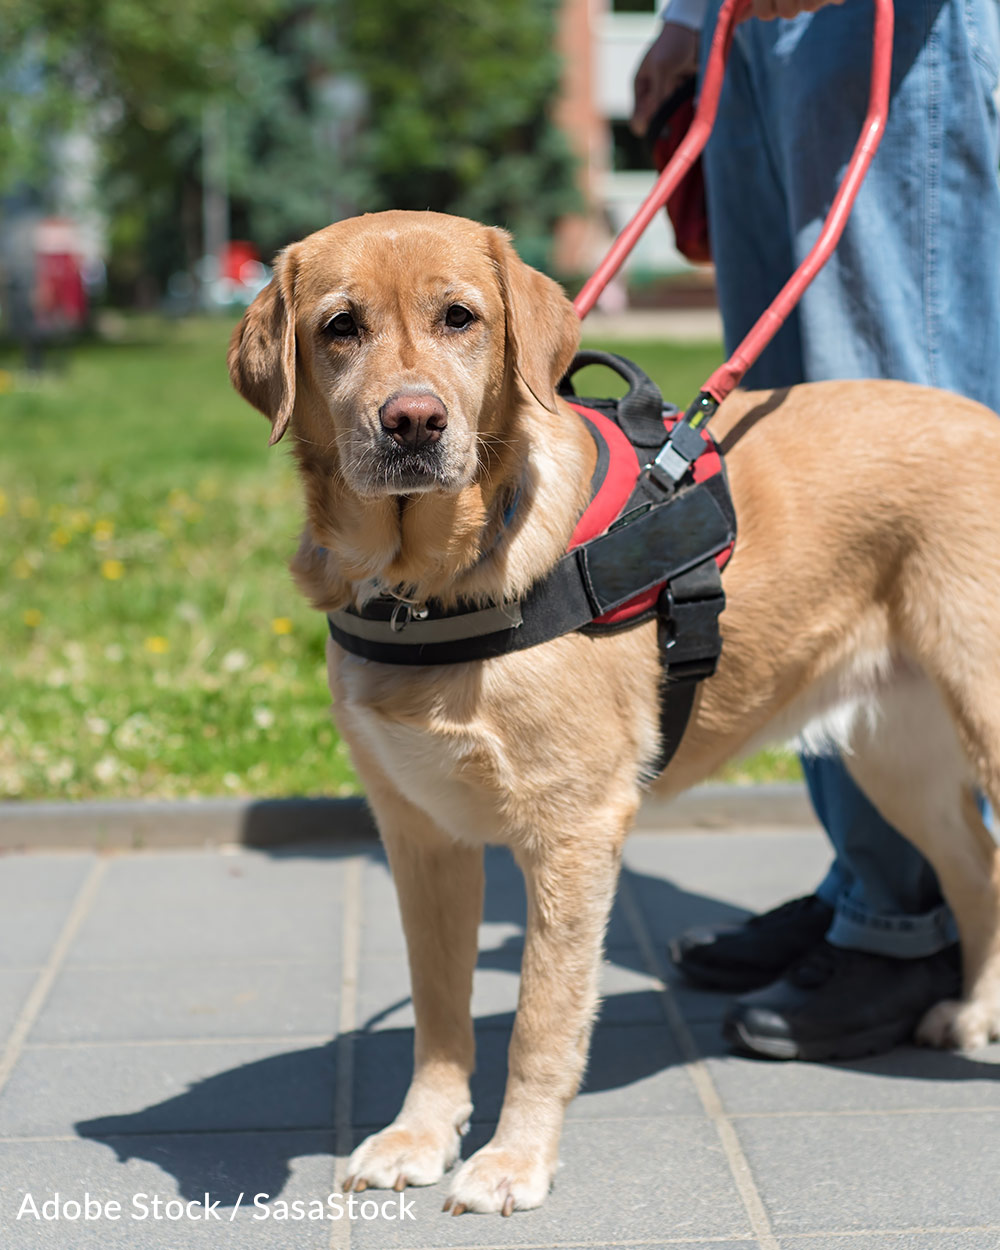 Respect Assistance Dogs and the important work they do.